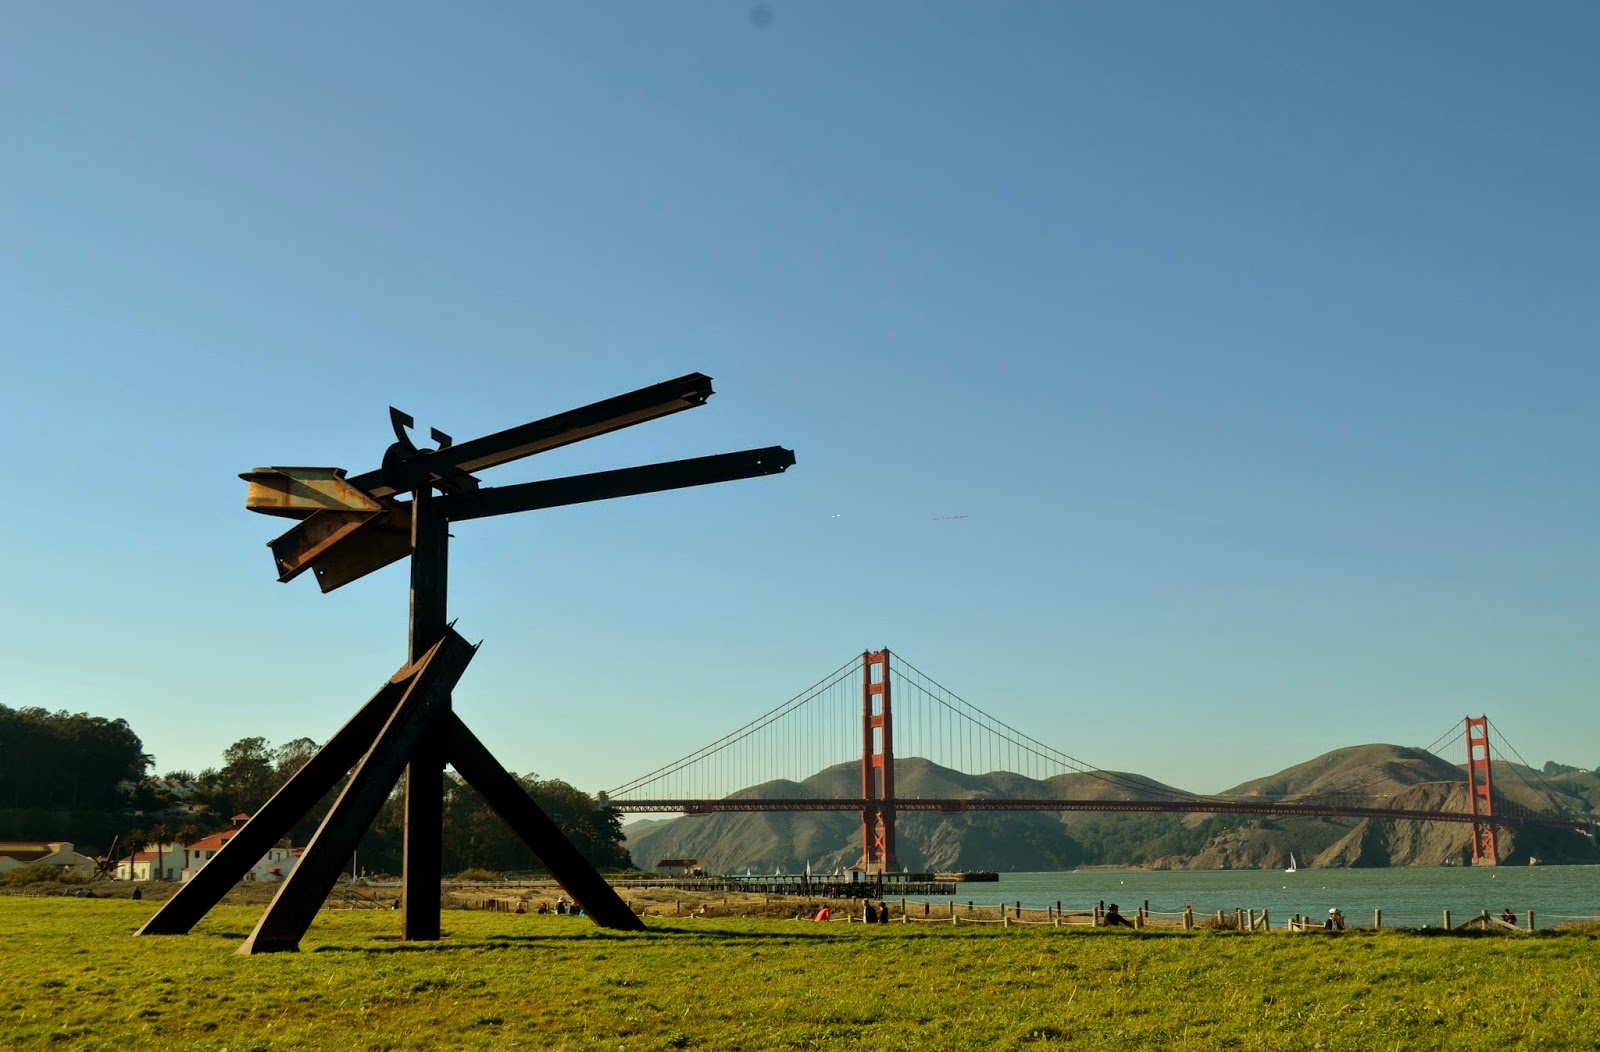 Mark di Suvero at Chrissy Field with the Golden Gate Bridge in the background